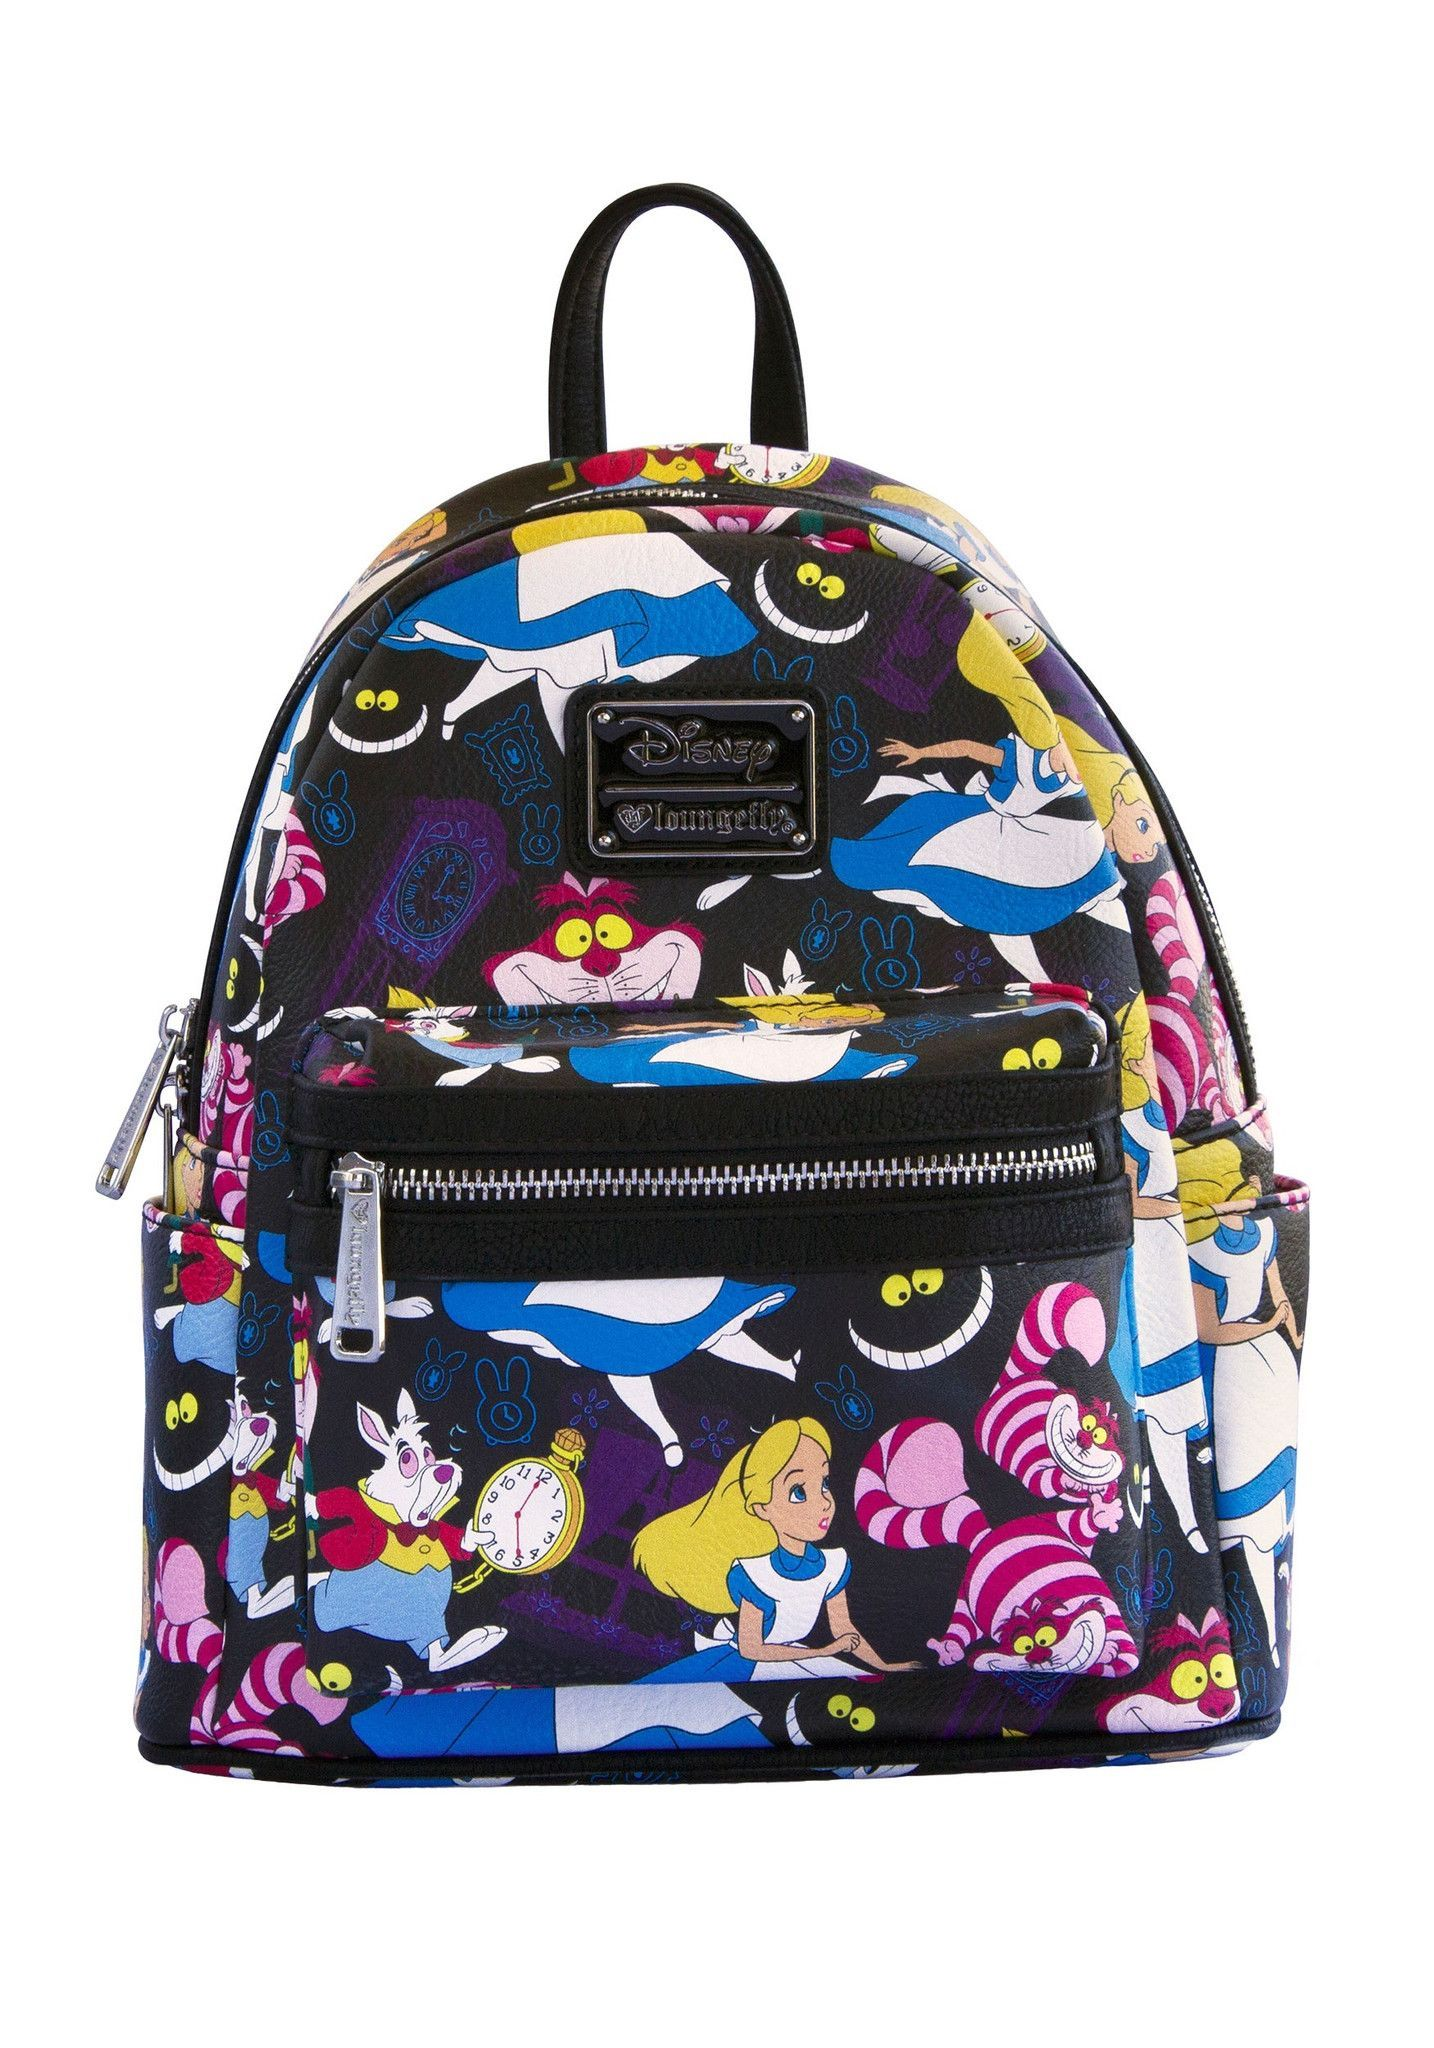 ca7168904e Alice In Wonderland Disney Mini Faux Leather Backpack by Loungefly We re  all mad here...as you can see I am not all there myself.